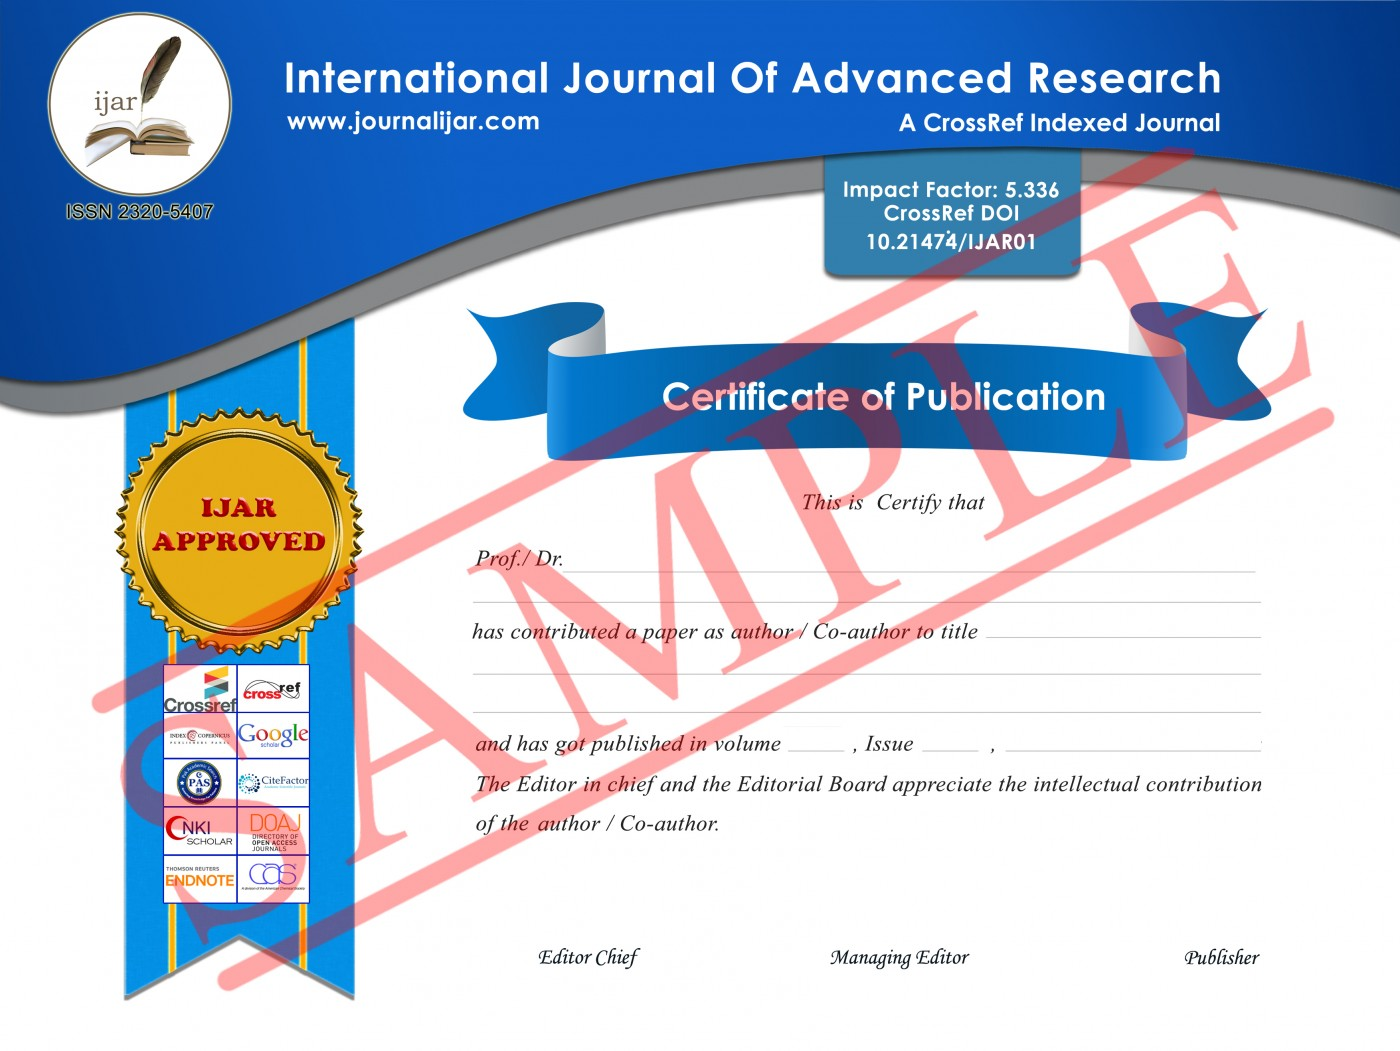 006 Research Paper Best Journals To Publish Papers Certificate Stunning In Computer Science List Of 1400